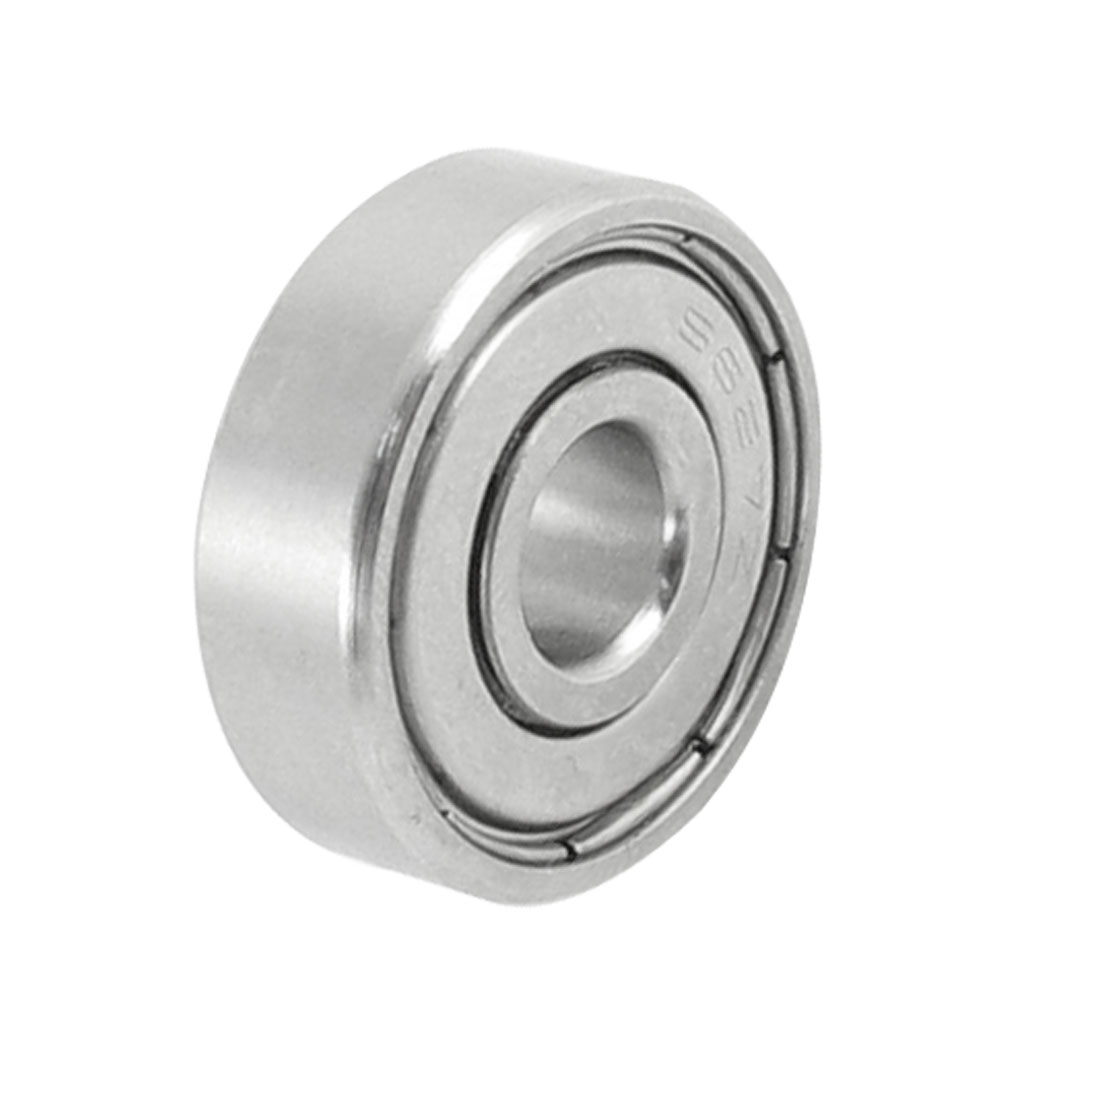 Stainless Steel 22mm x 7mm x 7mm Sealed Deep Groove Ball Bearing